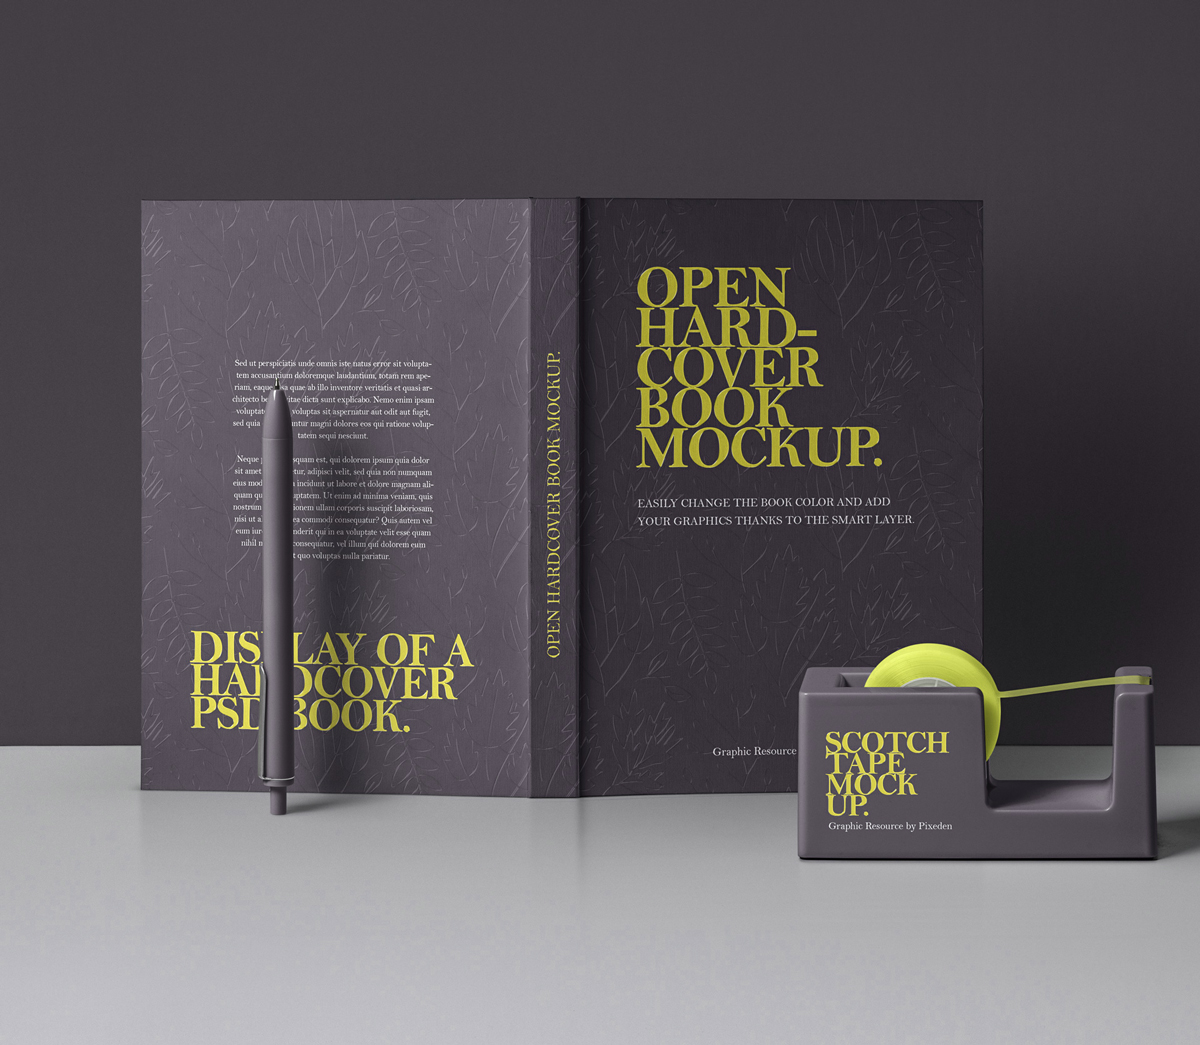 Free-Open-Hardcover-Book-With-Scotch-Tape-Mockup-PSD